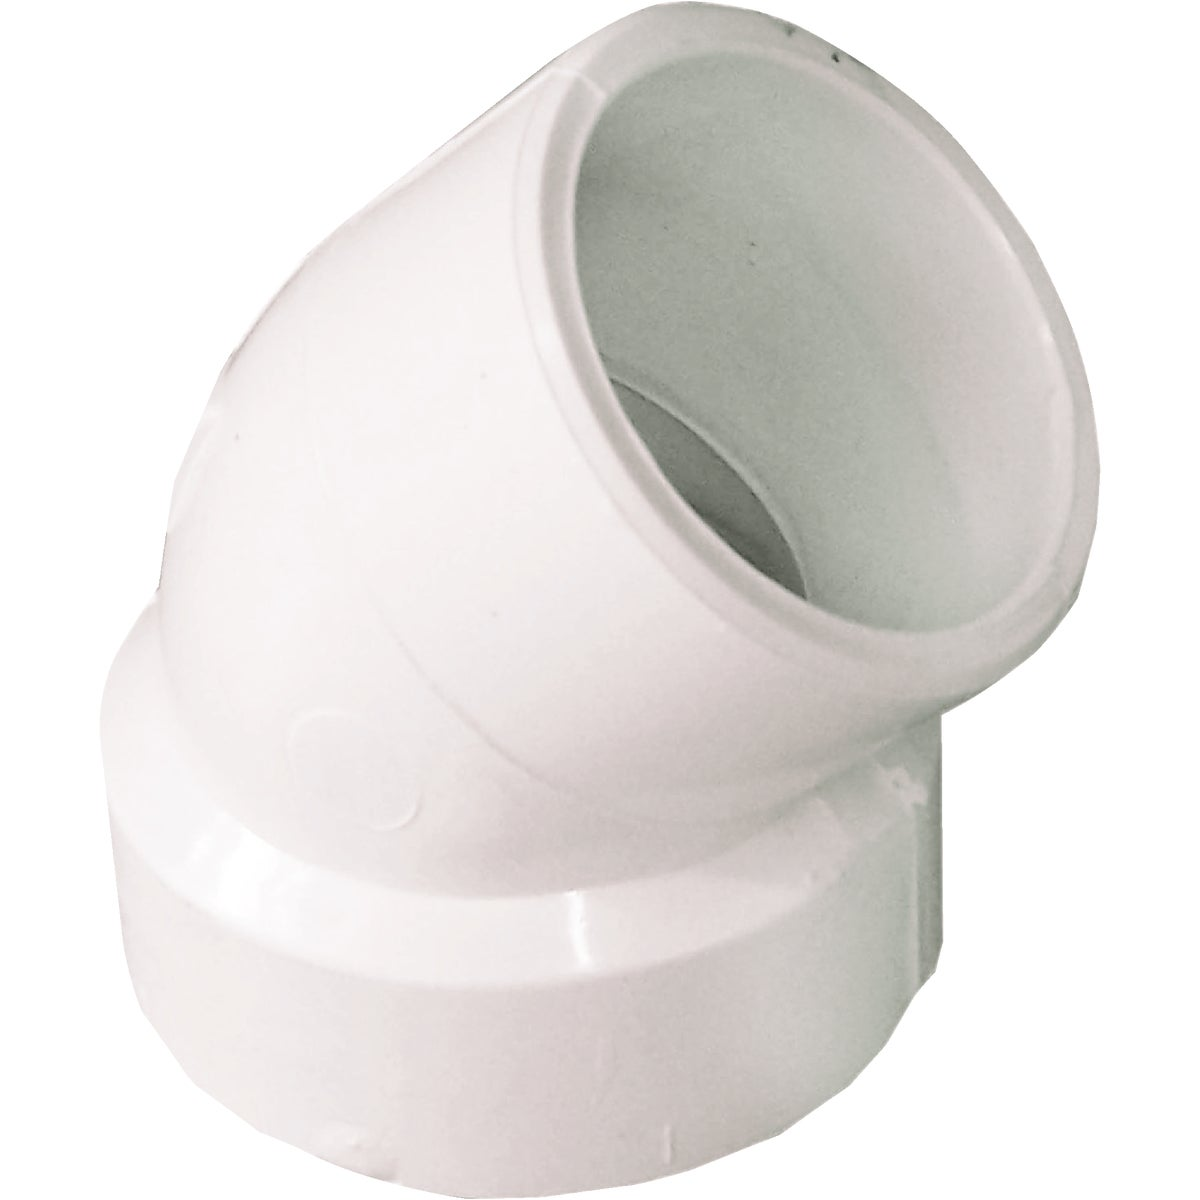 "1-1/2"" 45D DWV STR ELBOW - 72715 by Genova Inc  Pvc Dwv"